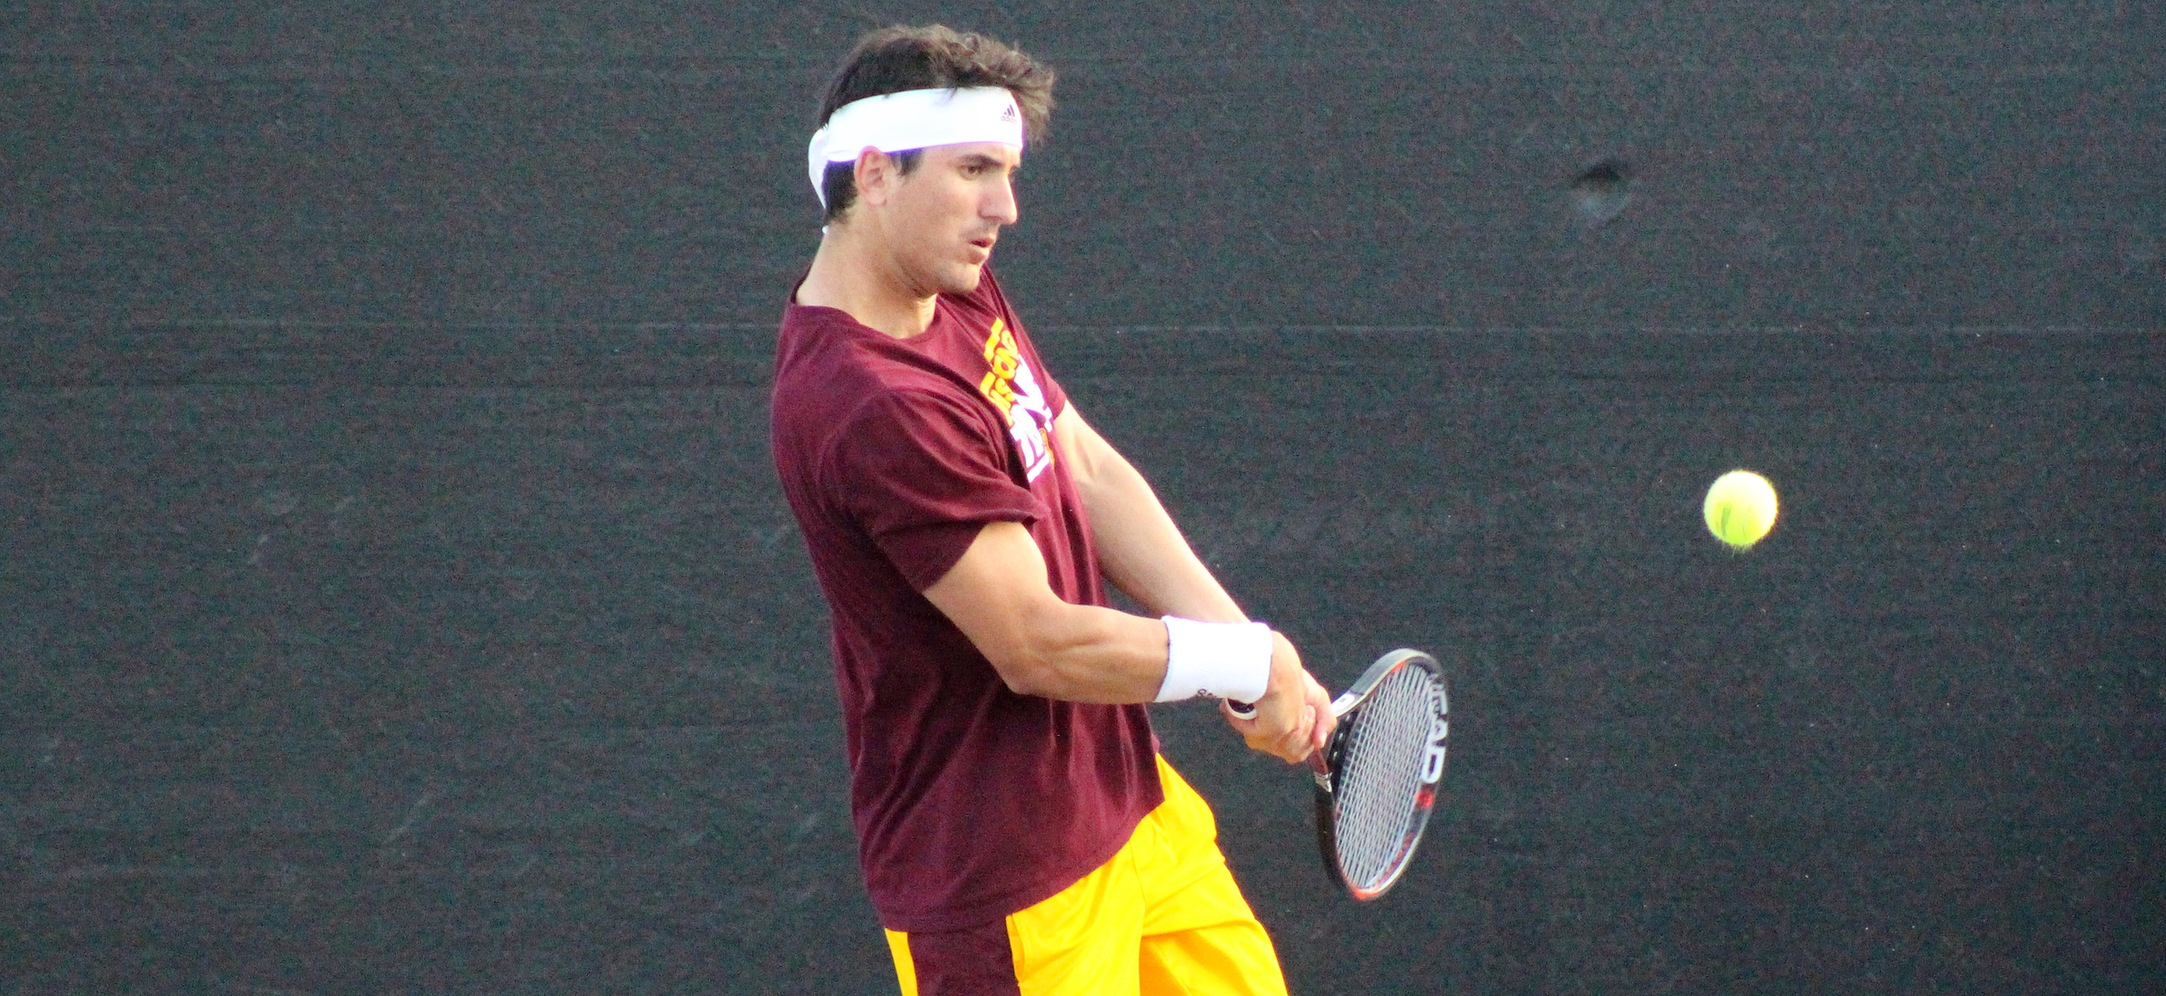 No. 8 Lynn Downs No. 3 Armstrong State Men's Tennis, 5-1